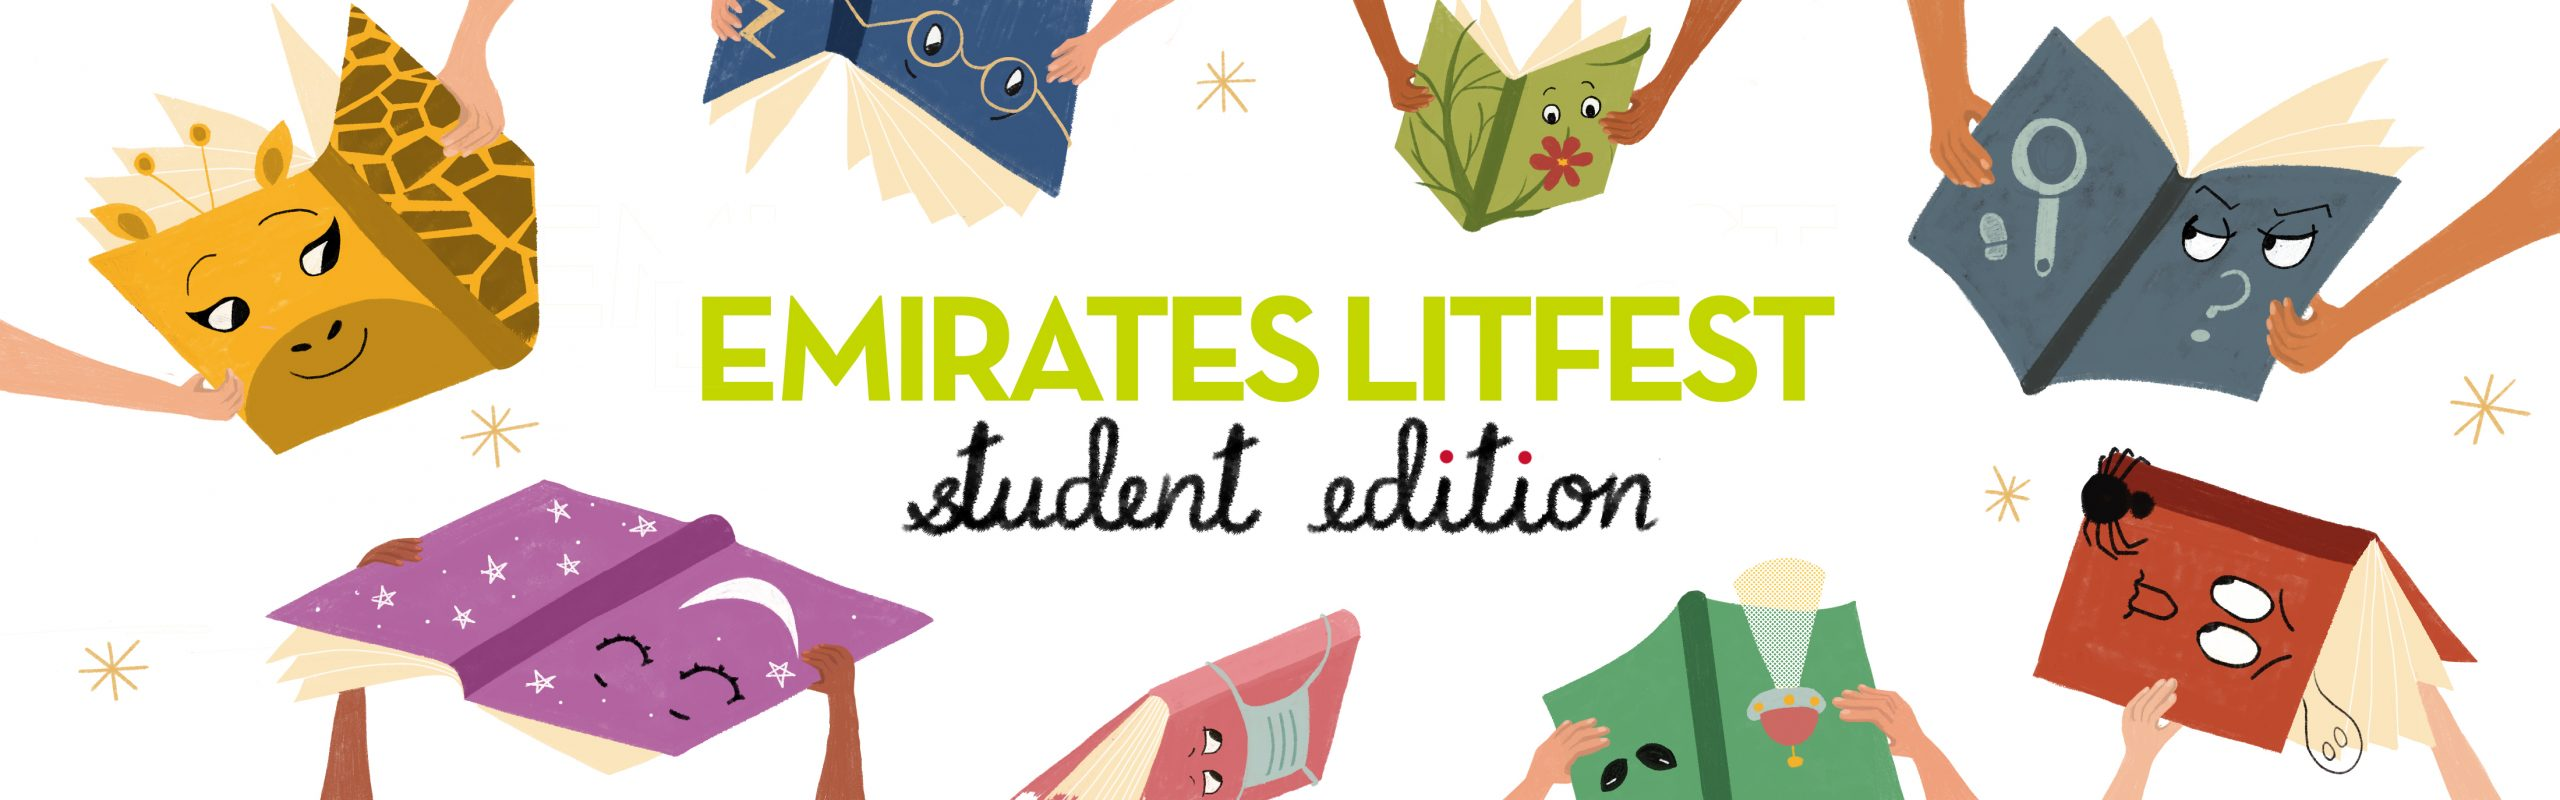 Emirates LitFest Student Edition